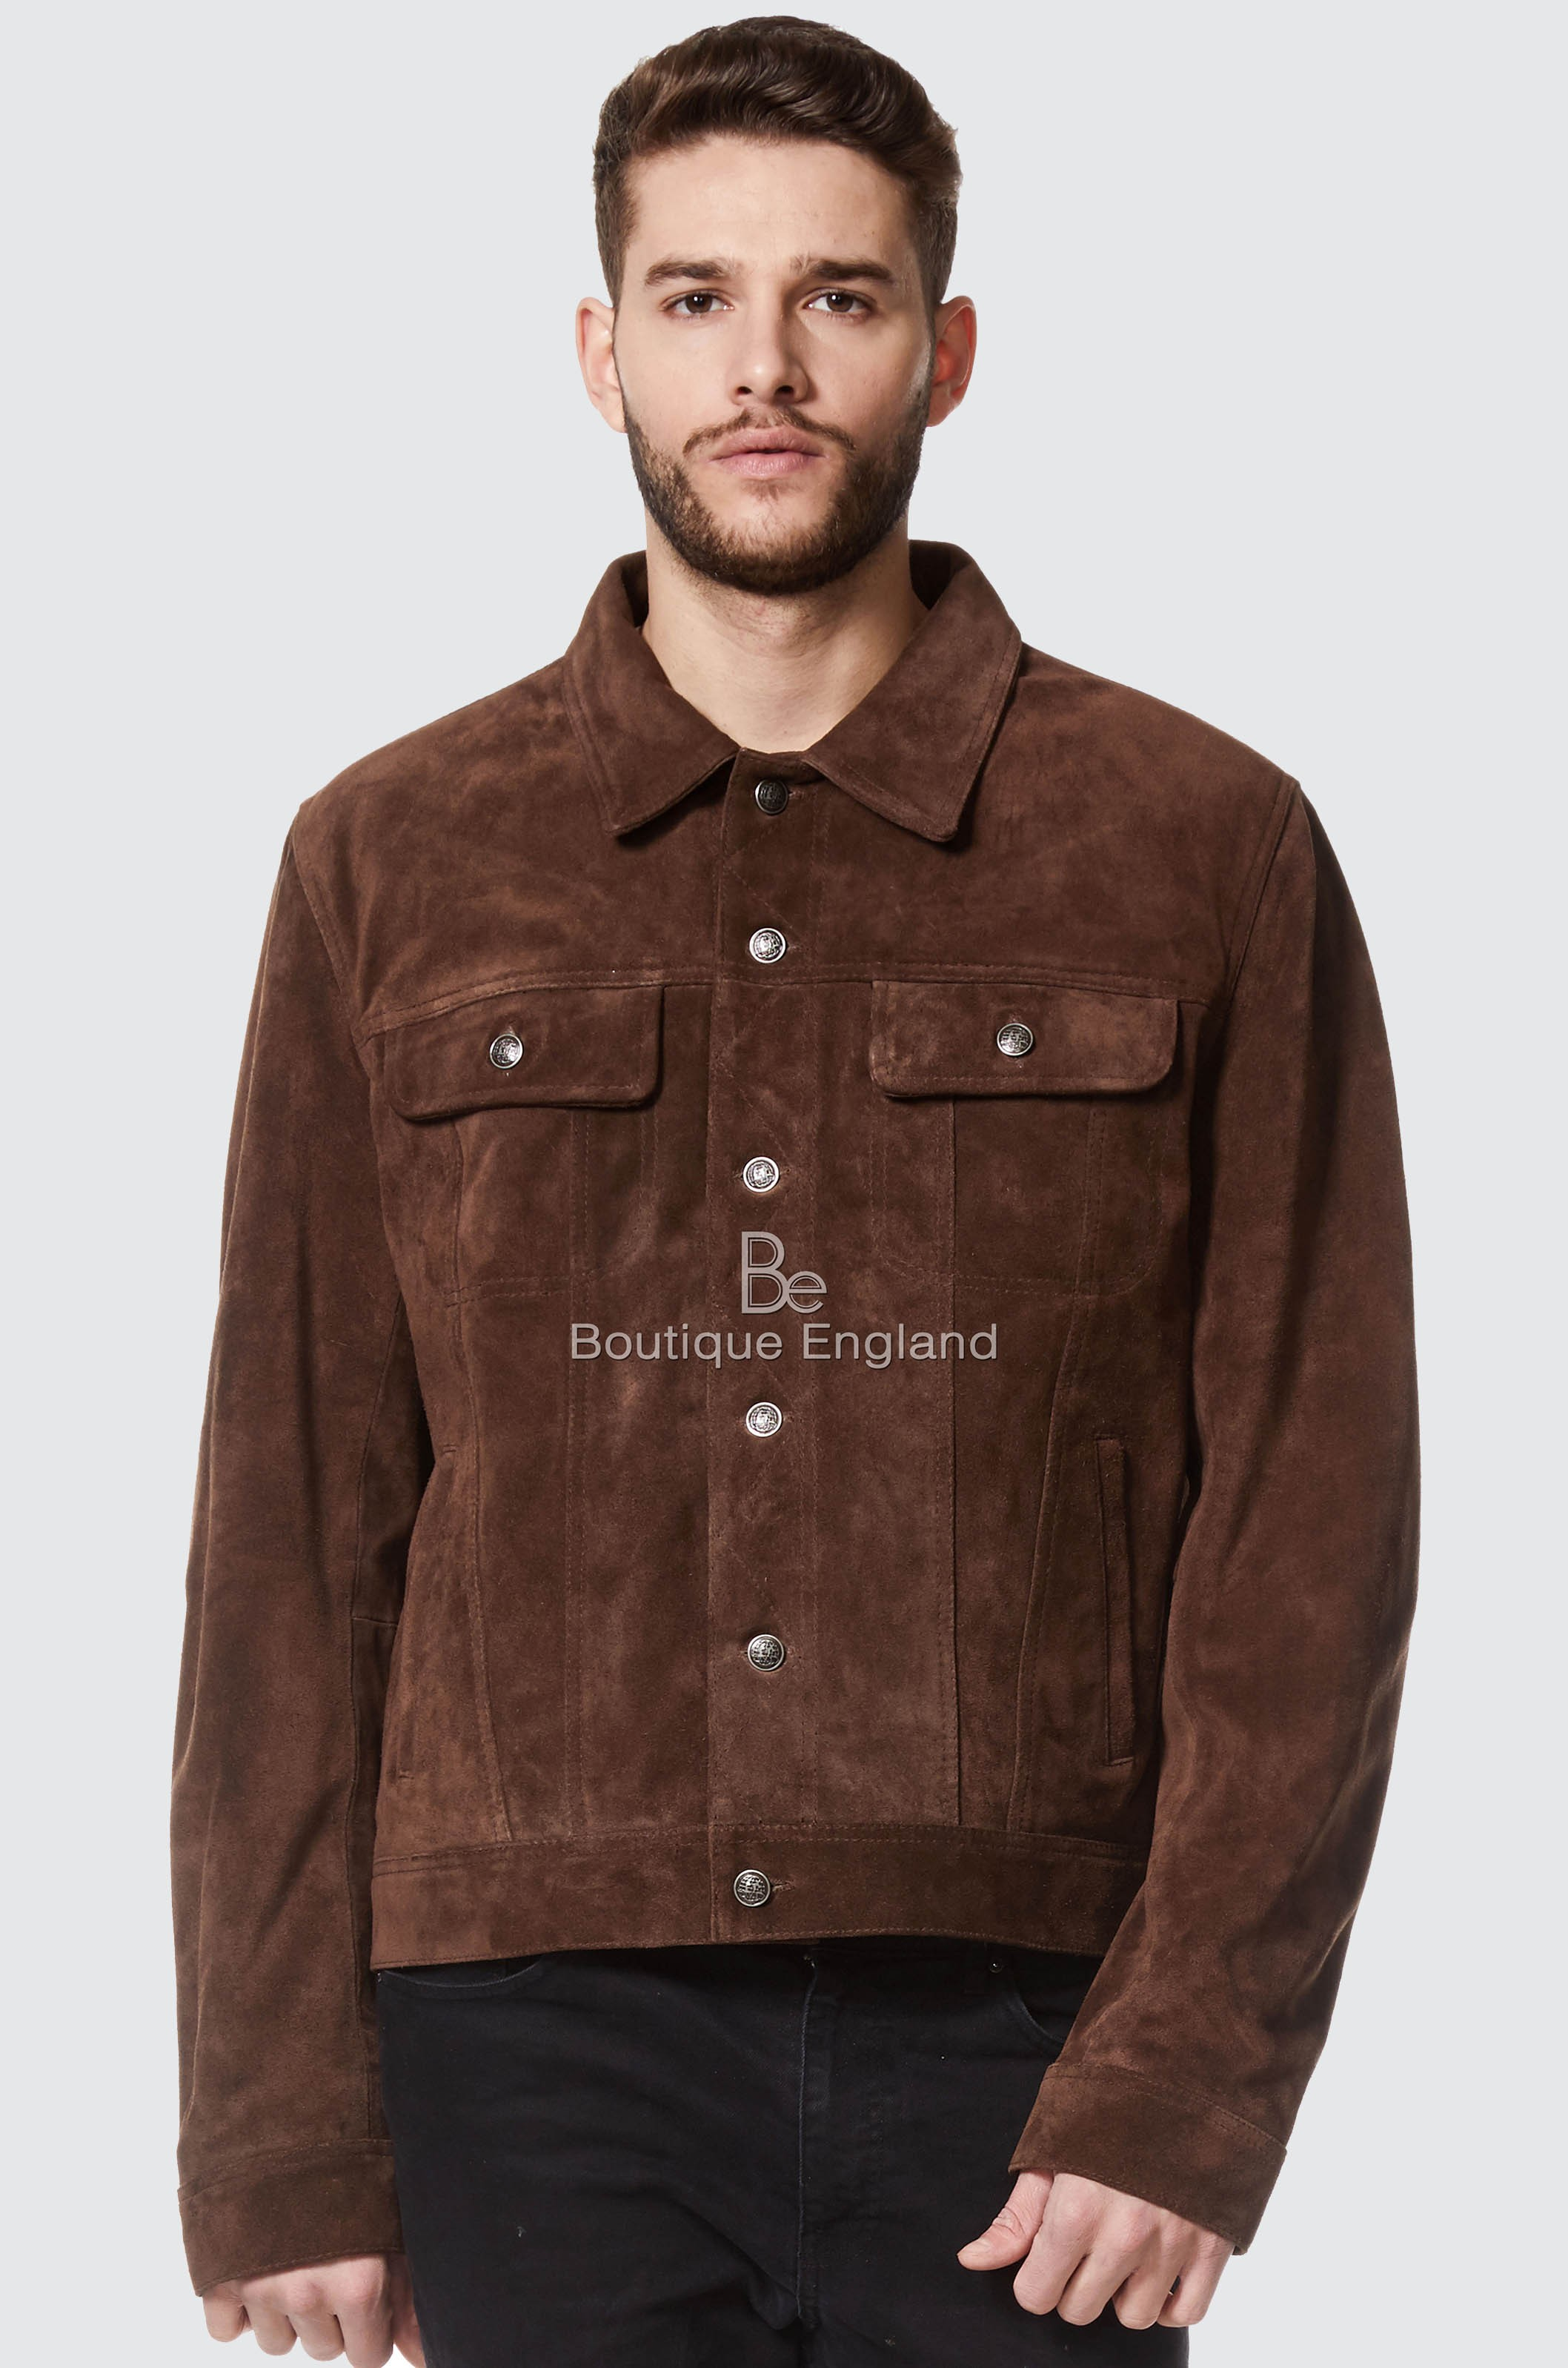 Men's 'TRUCKER' Suede Leather Jacket Brown | REAL LEATHER CLASSIC STYLE 1280